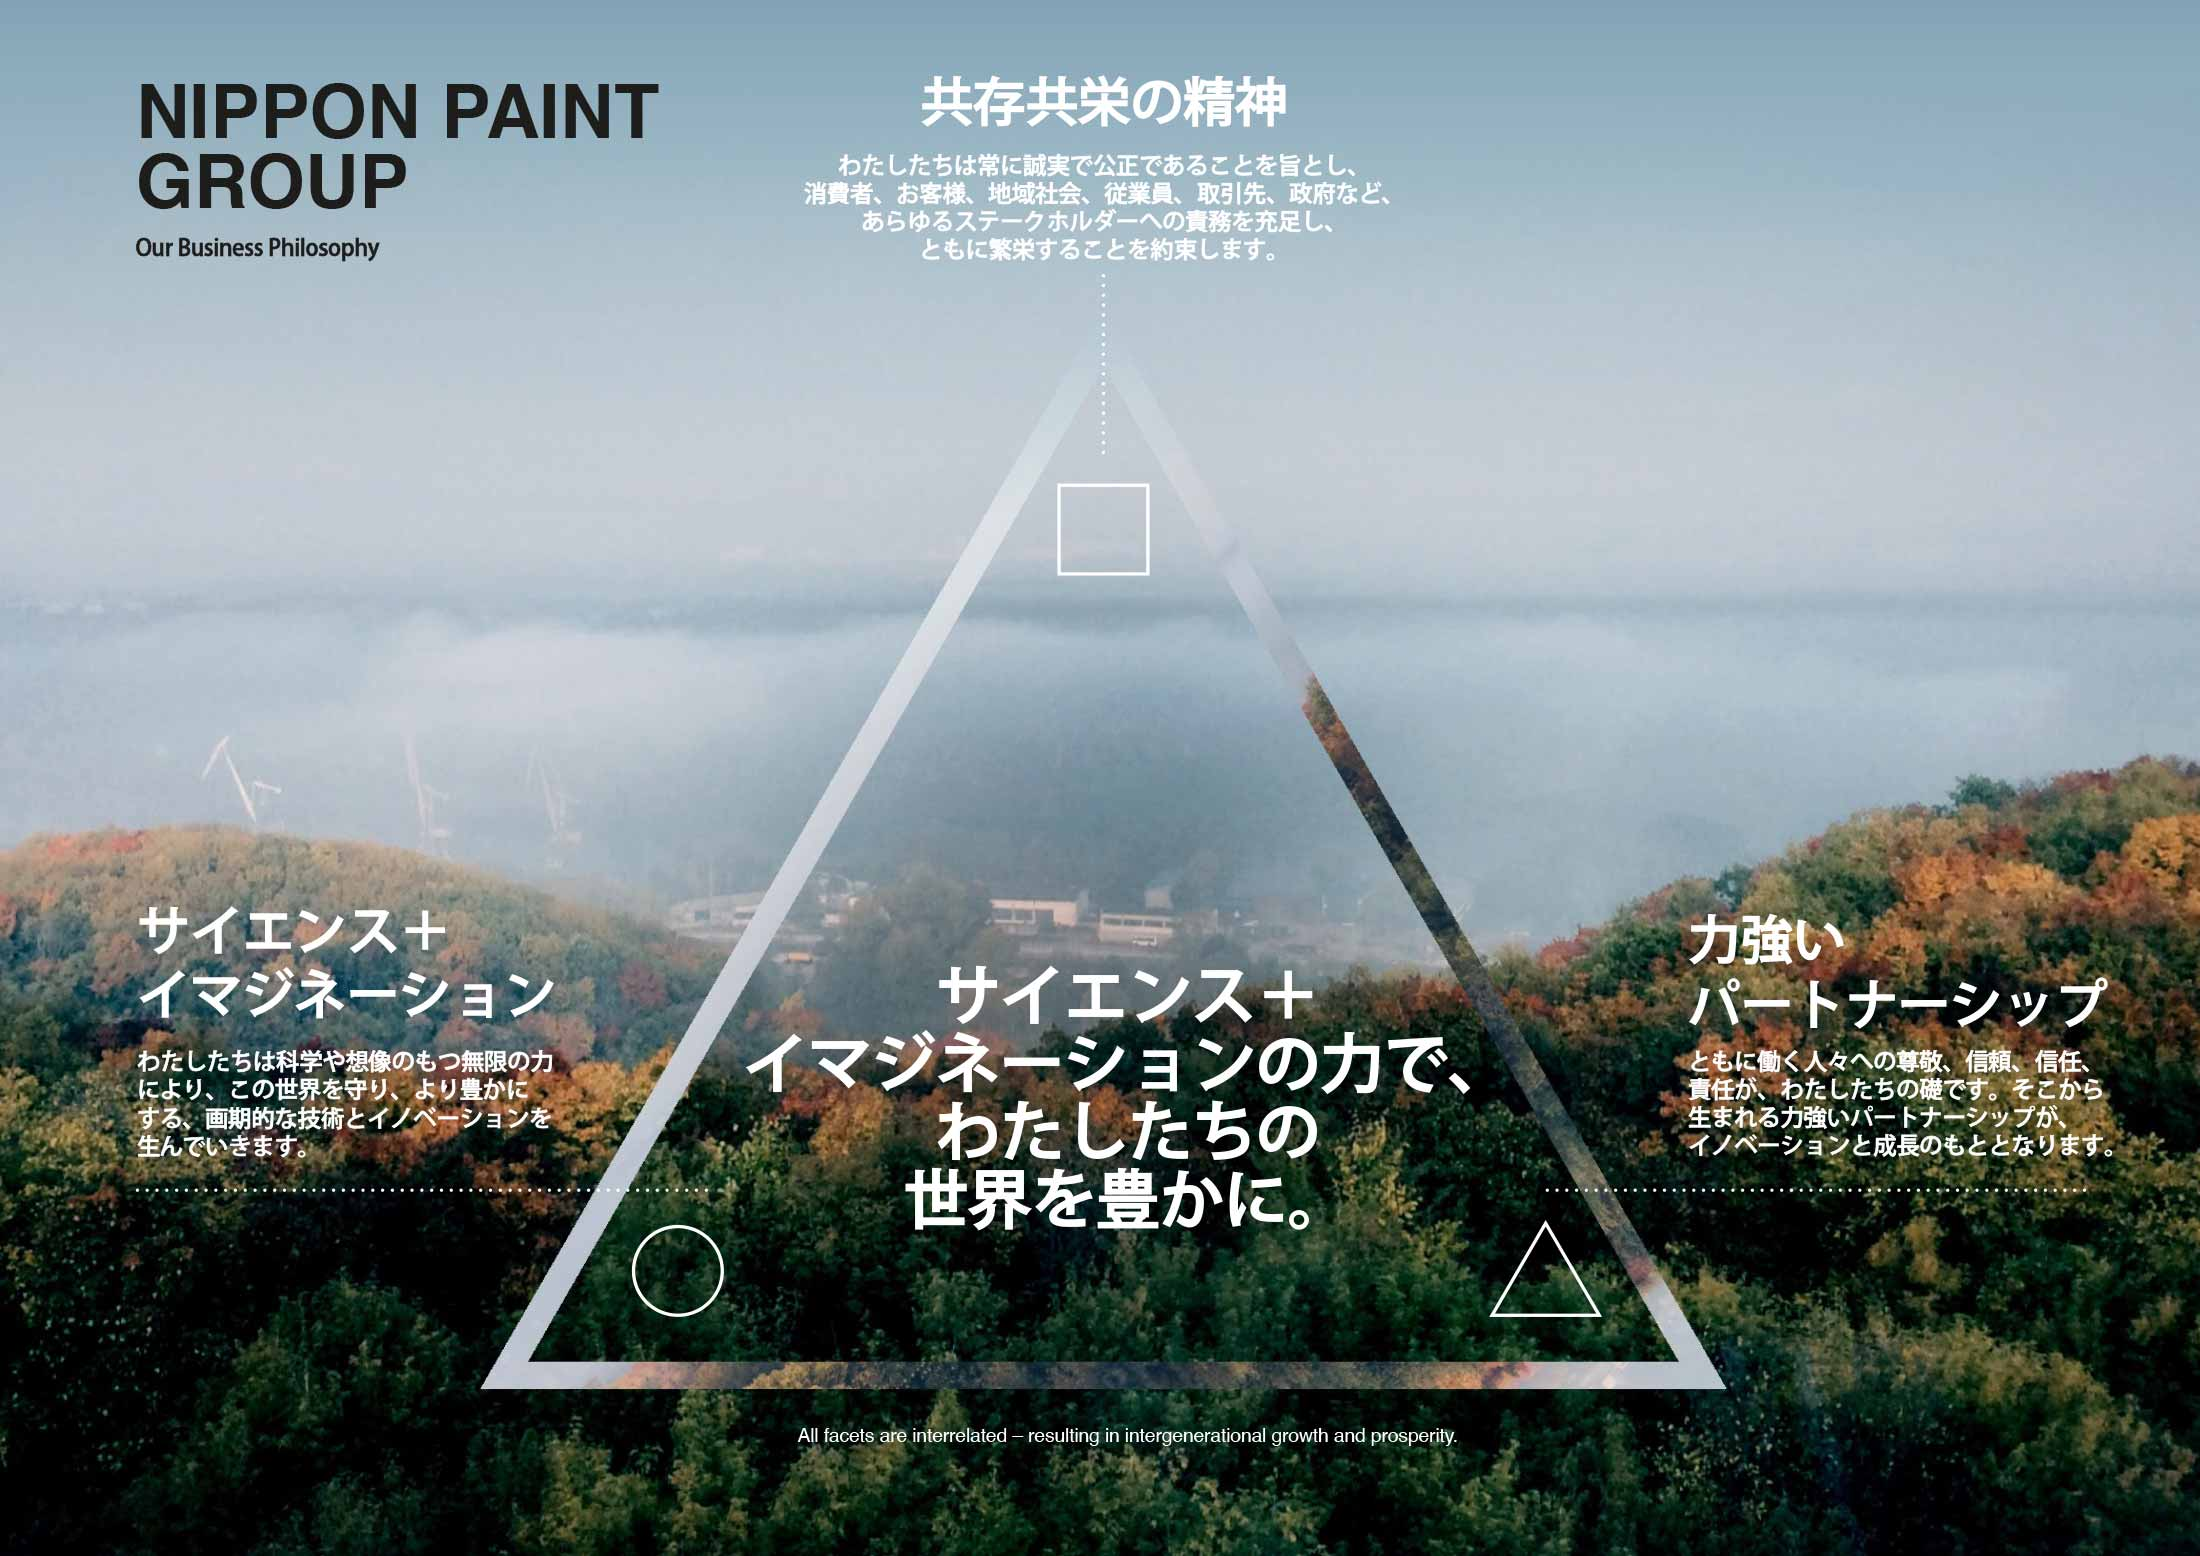 Nippon Paint Group Philosophy